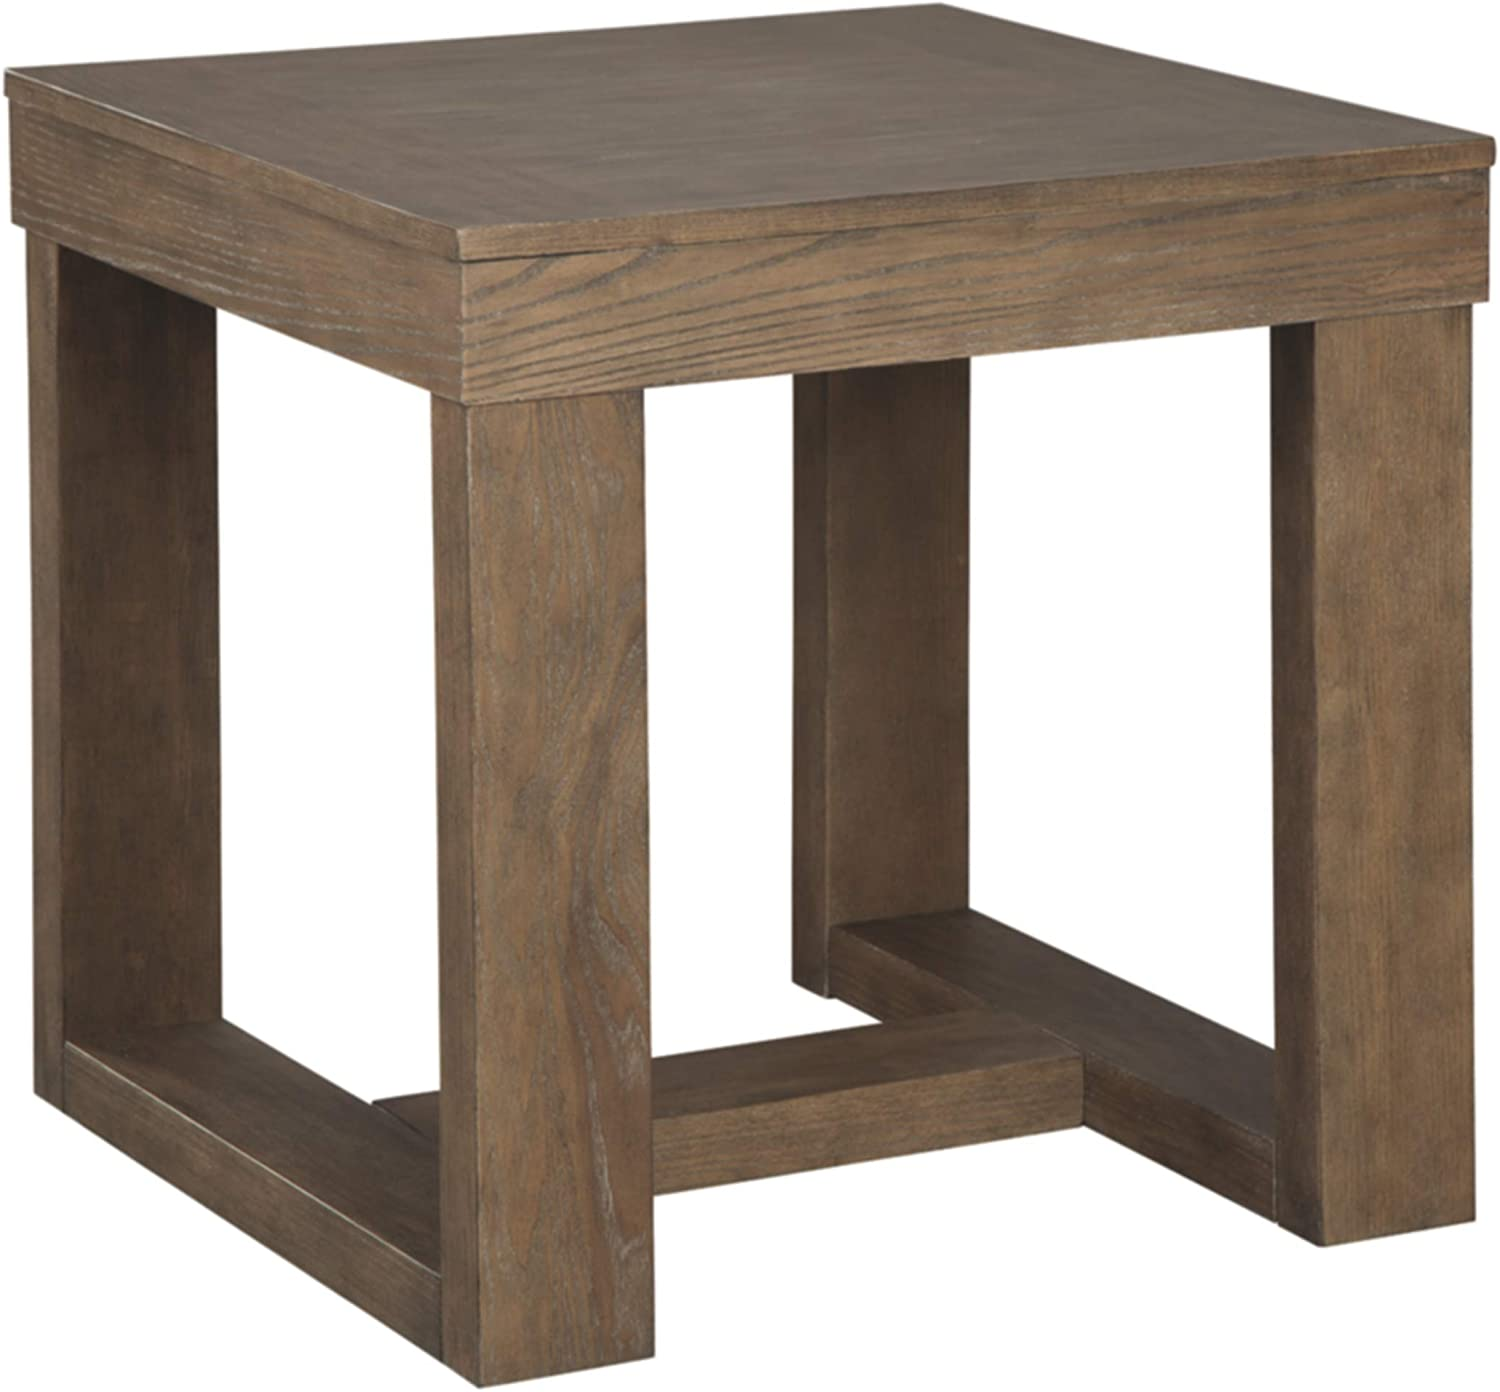 Signature Design by Ashley - Cariton Square End Table, Grayish Brown Wood